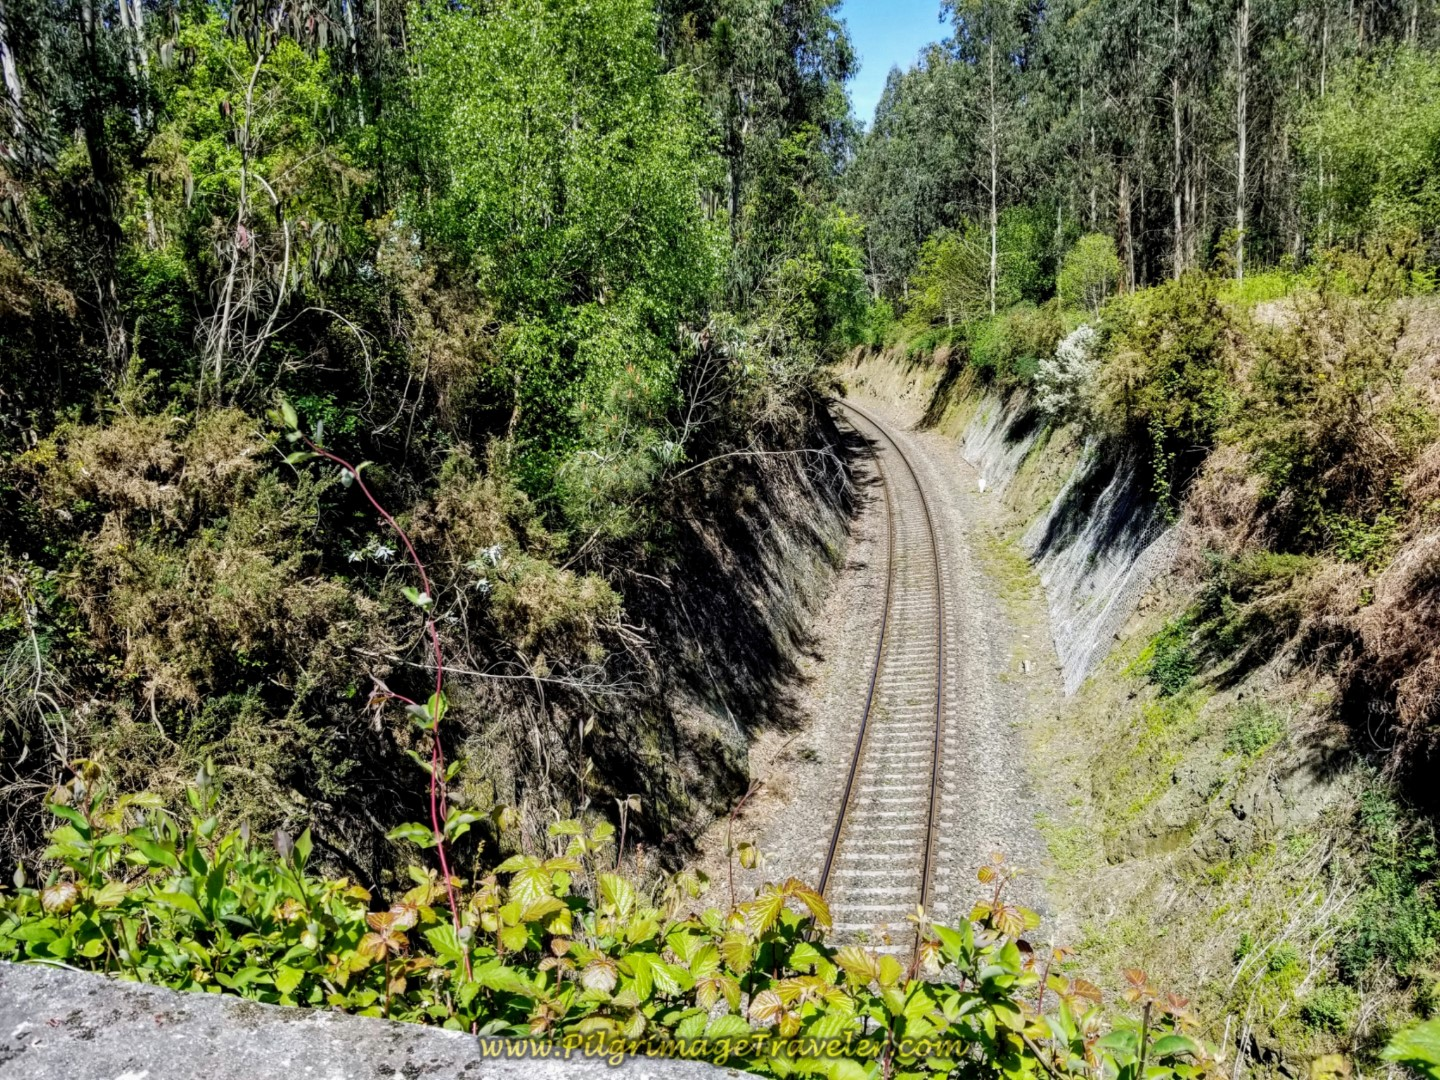 Cross Railroad Tracks on the Rúa Couto on Day Five of the Camino Inglés